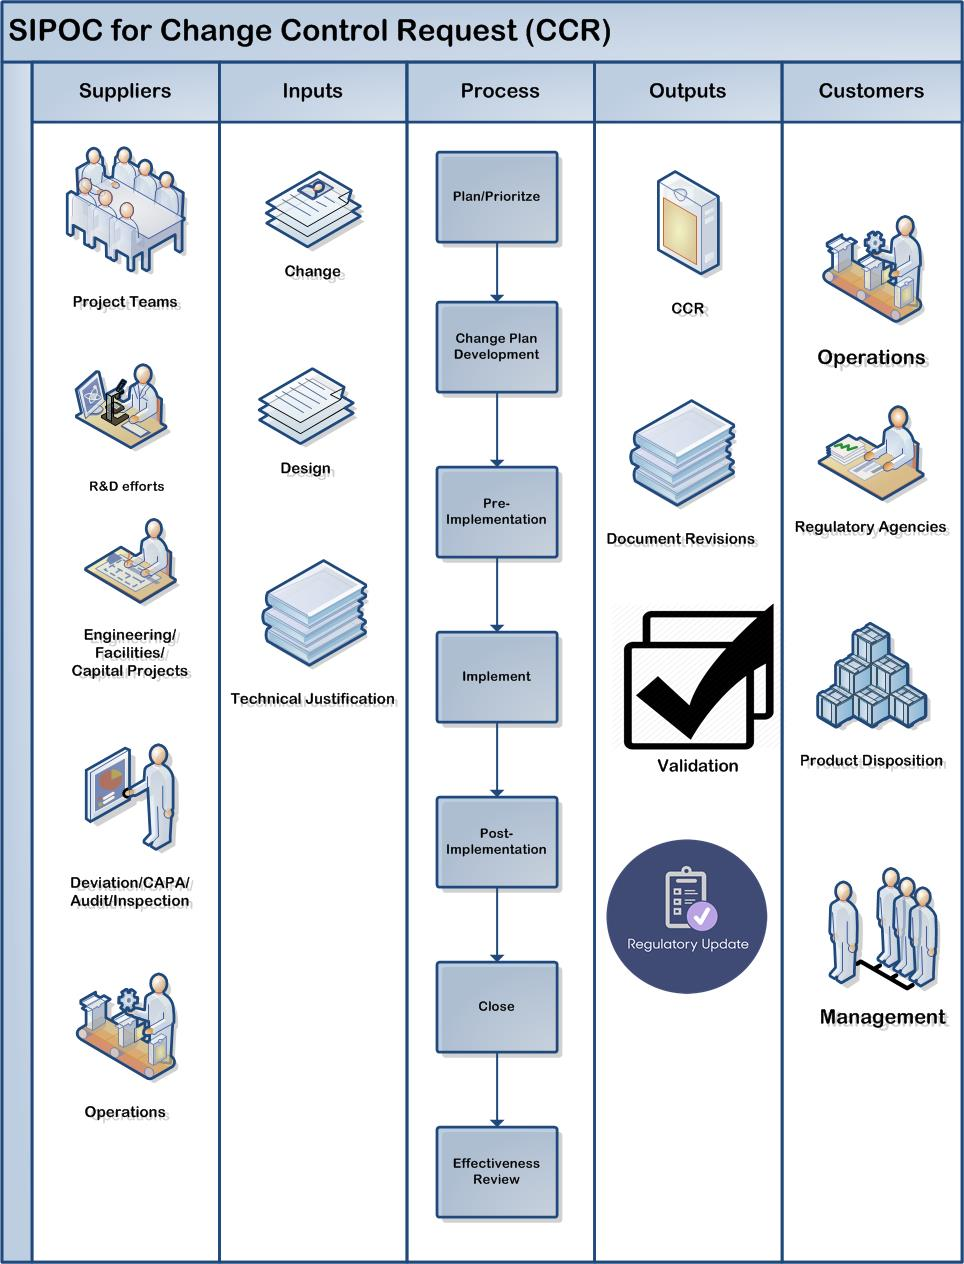 SIPOC for CCR